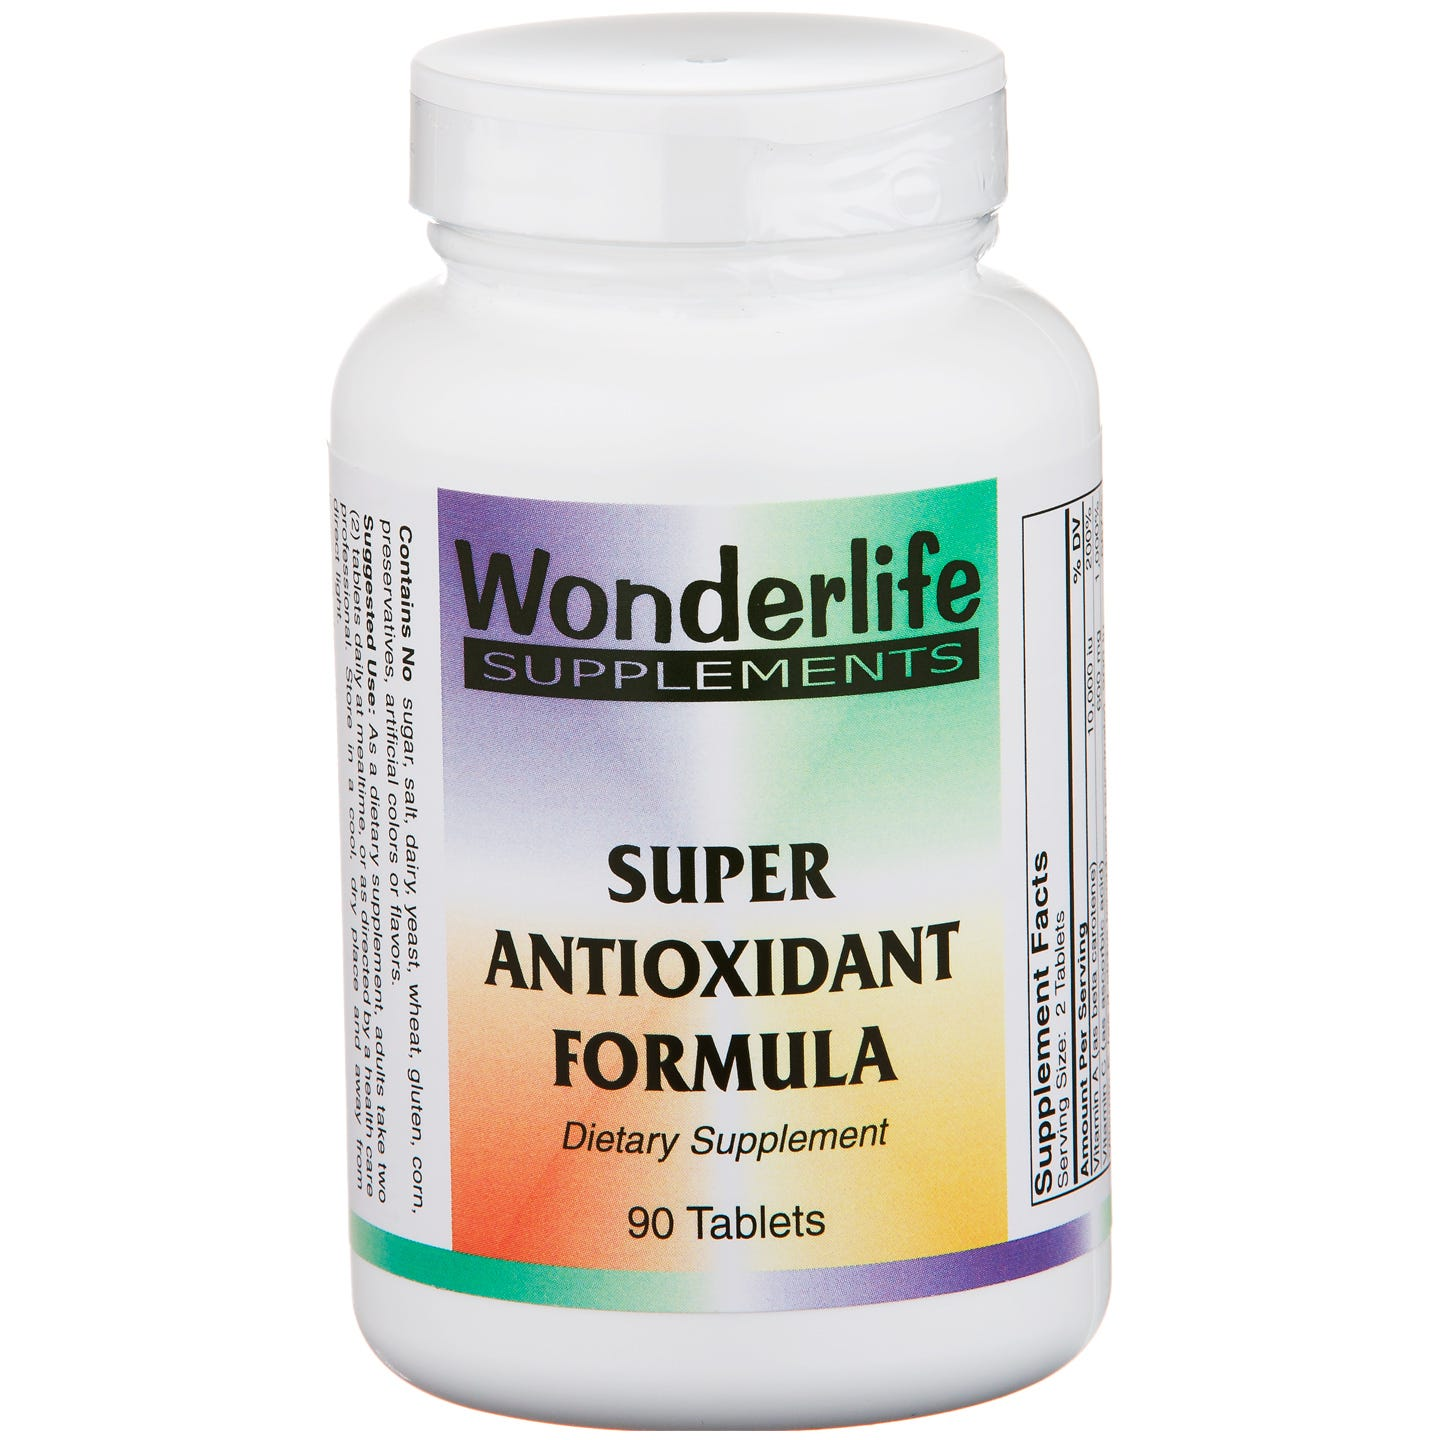 Super Antioxidant Formula (90 ct) - Wonderlife - Rapid Diet Weight Loss Products Shop